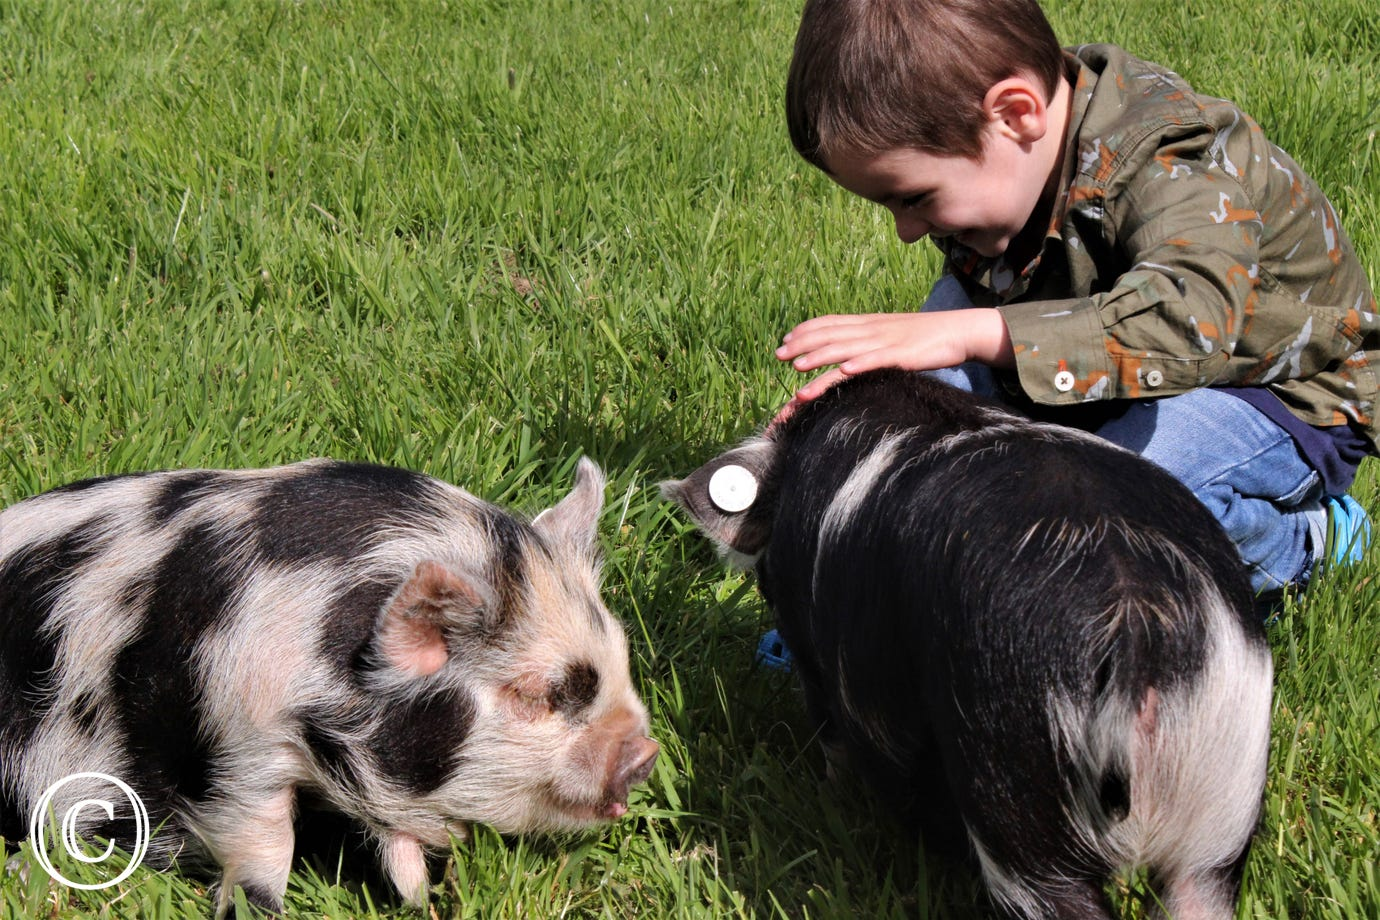 Piglets at Well Farm Cottages